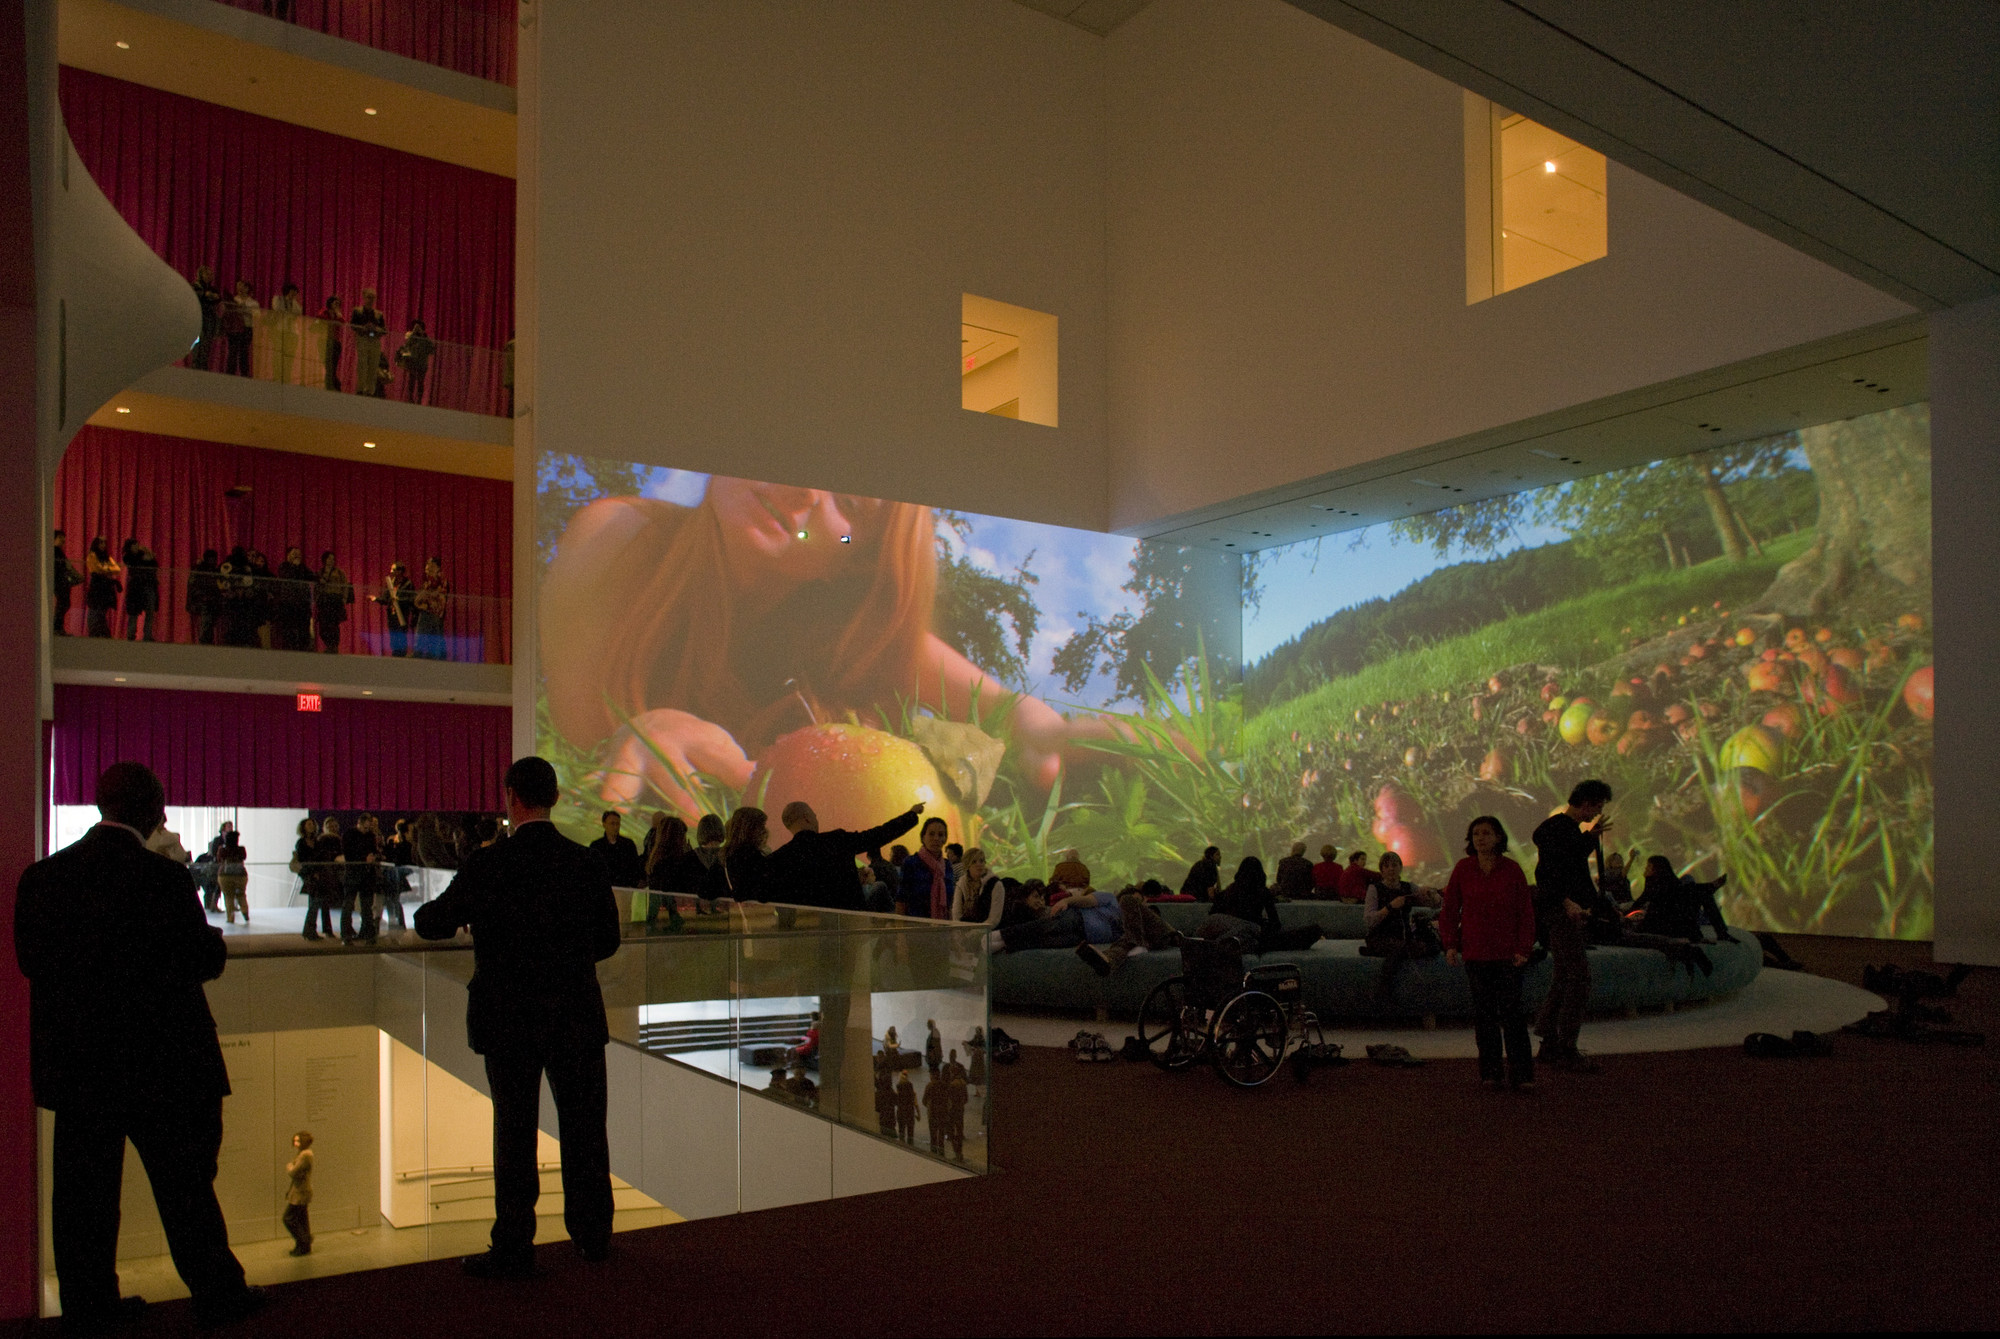 Pipilotti Rist. Pour Your Body Out (7354 Cubic Meters). 2008